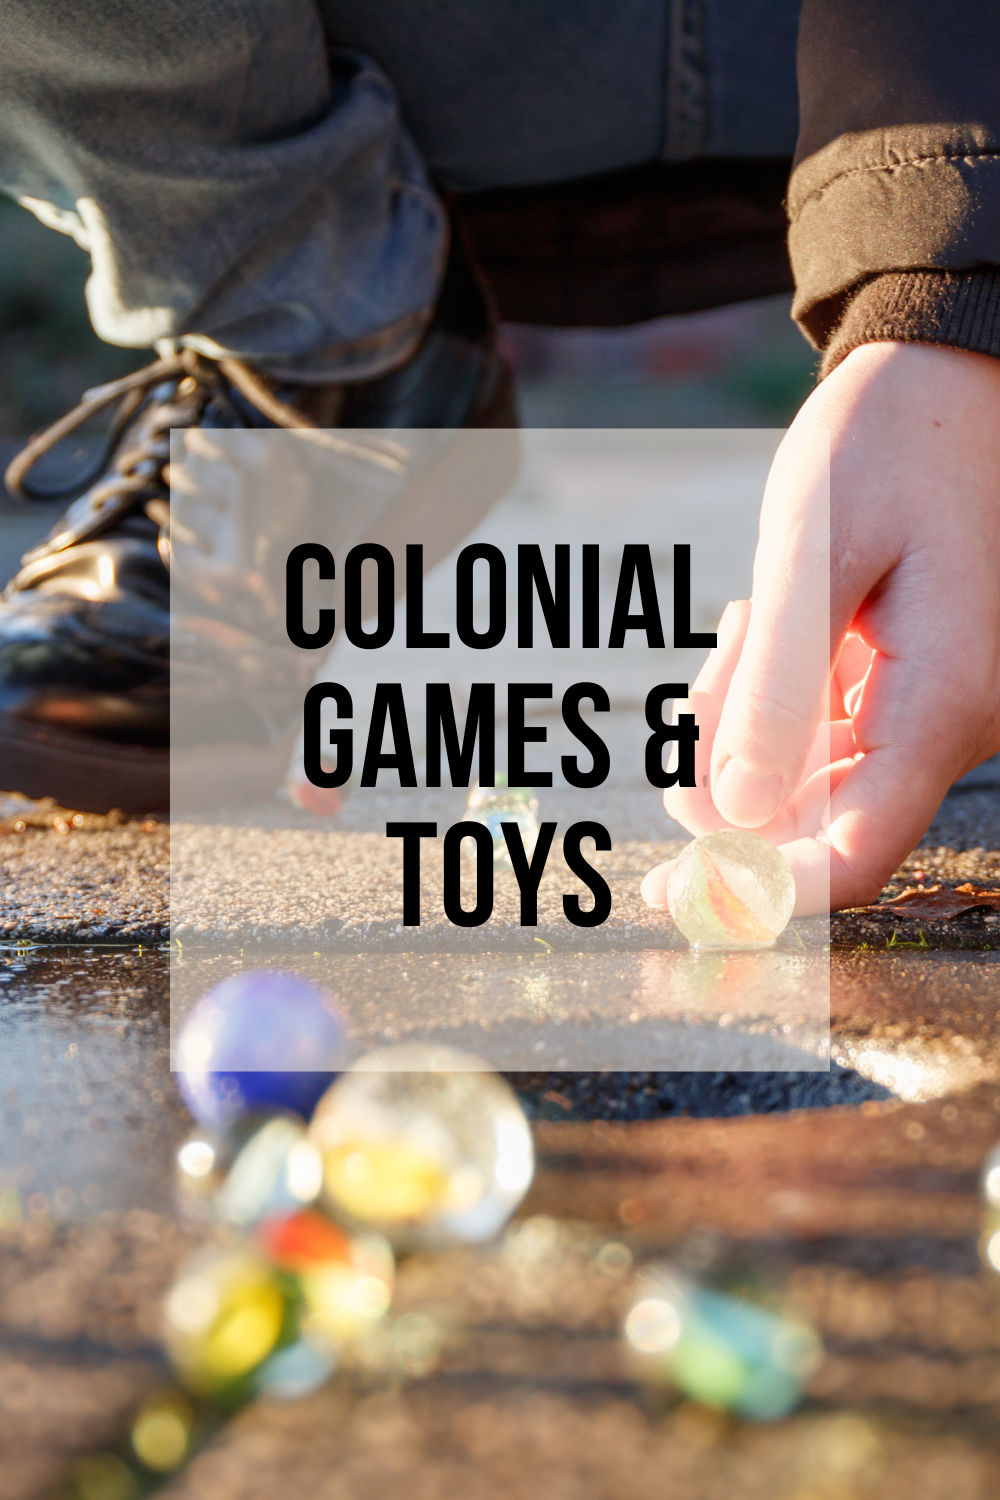 Colonial Games & Toys